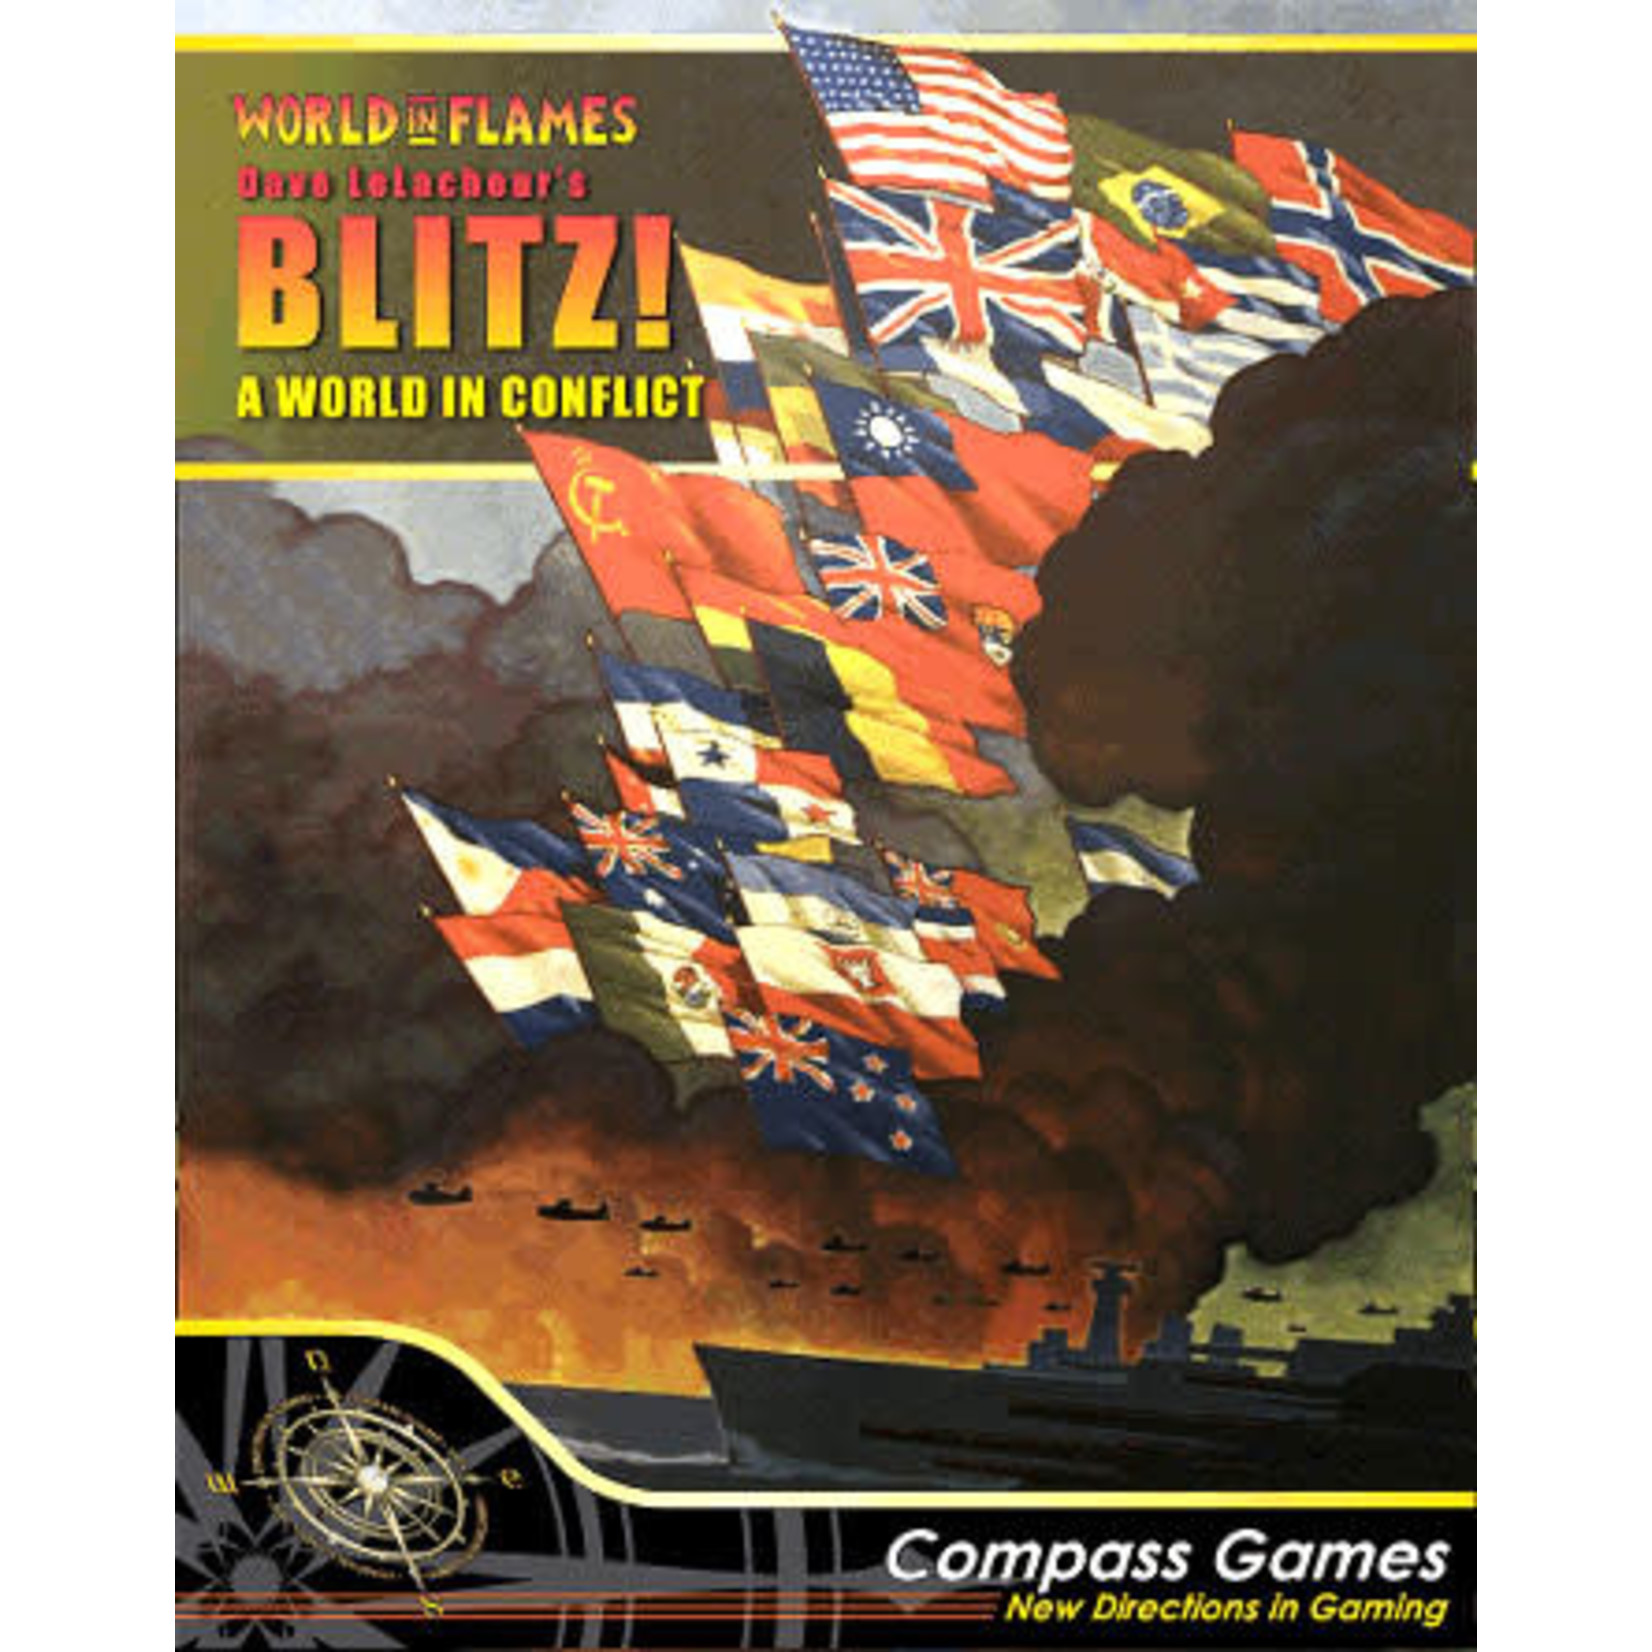 Compass Games Blitz! A World In Conflict